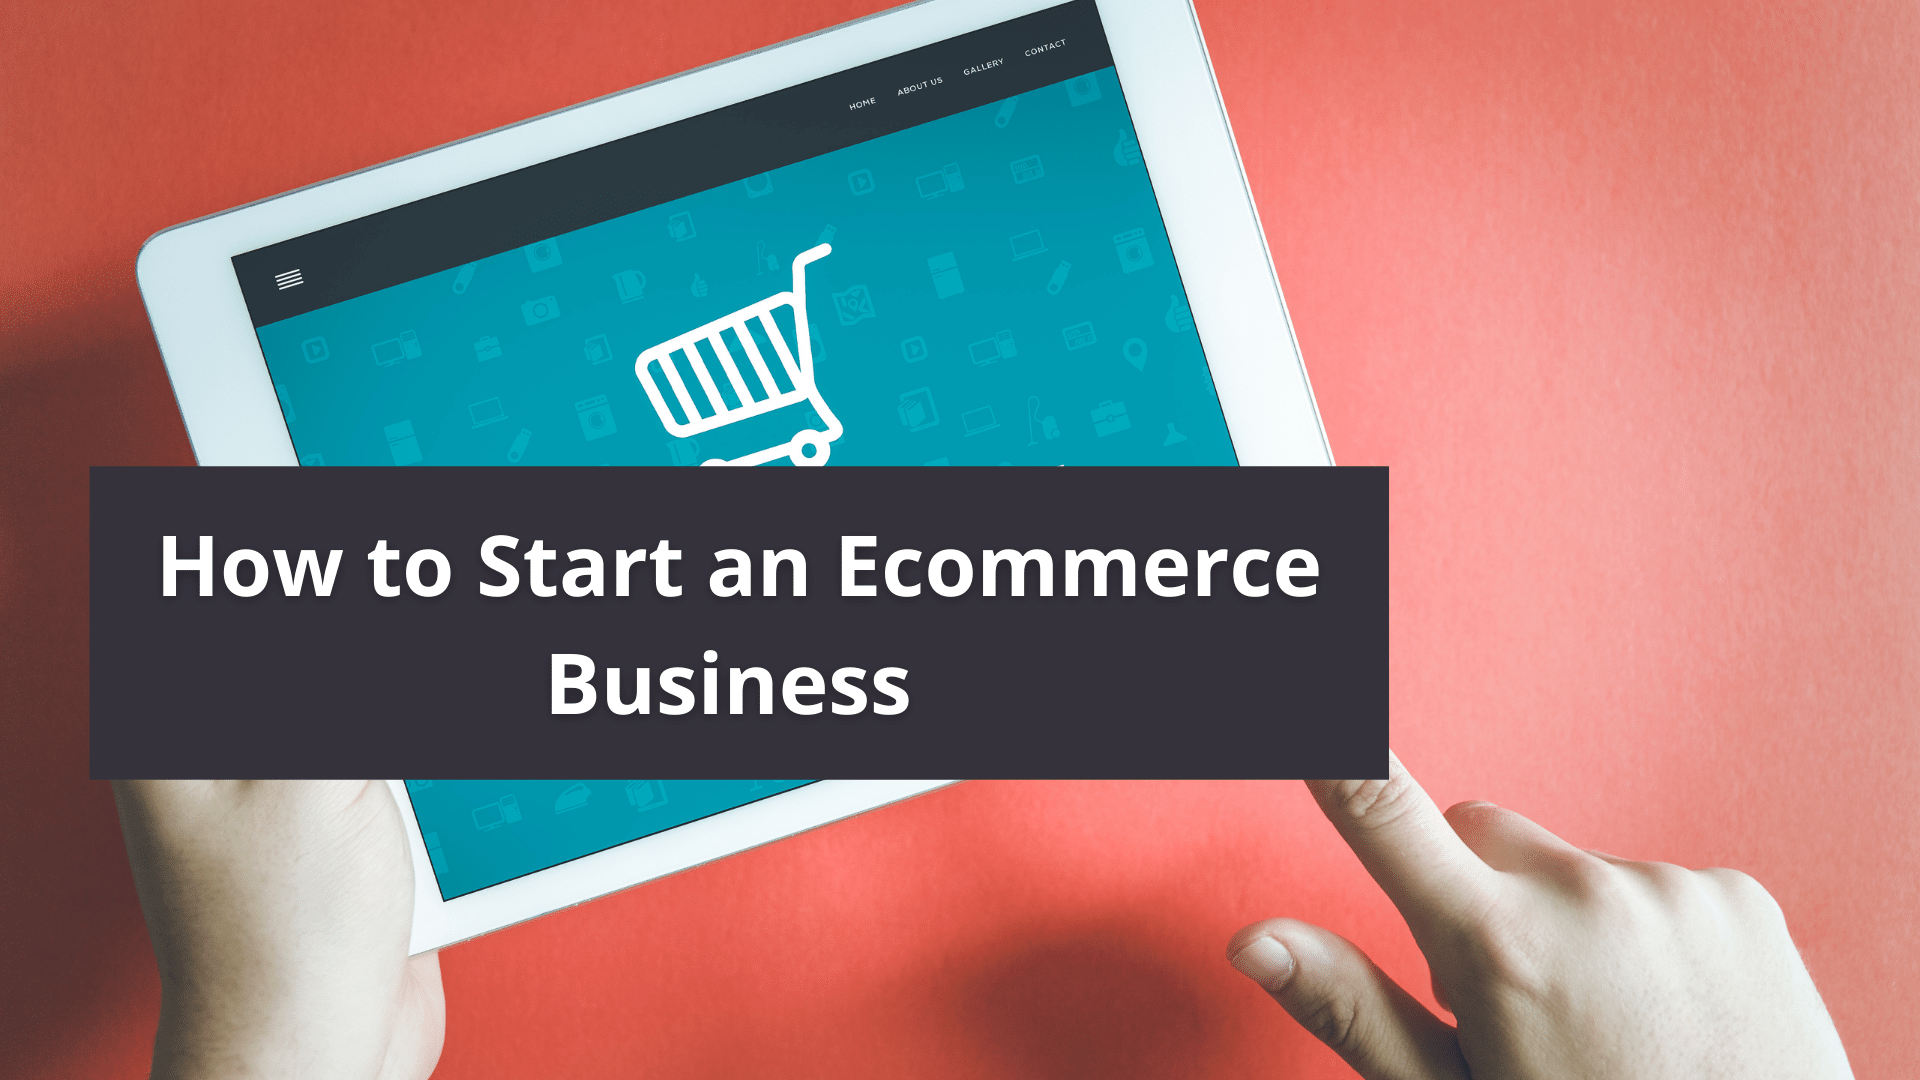 How to Start an Ecommerce Business - Easy Steps to Get Started With an Ecommerce Business 41